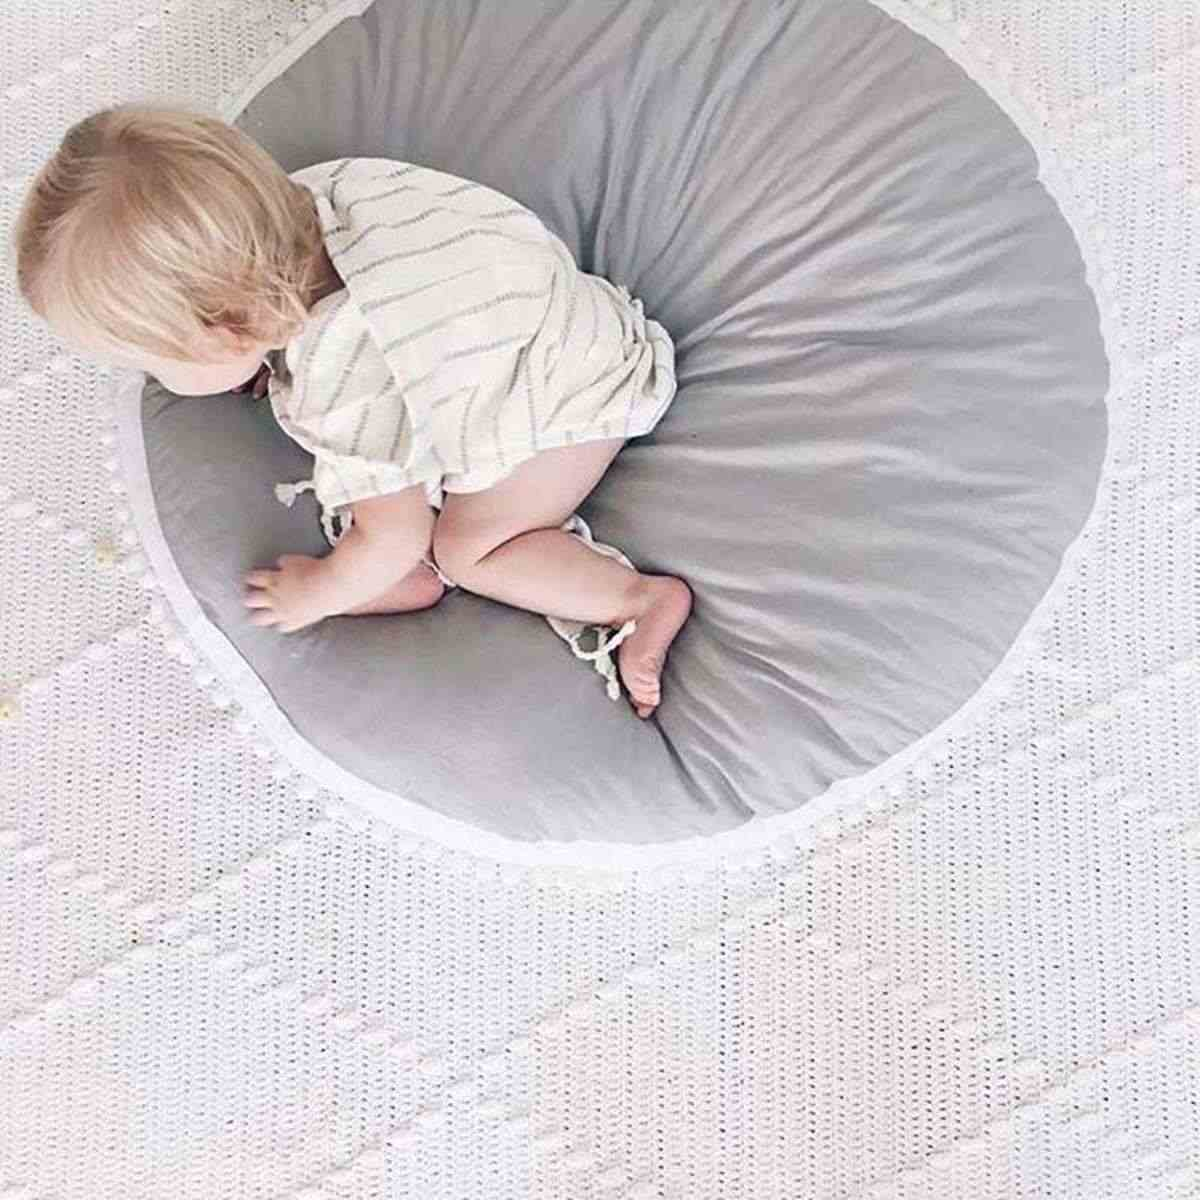 Nordic Baby Bean Bag Infant Nursling Feeding Seat Sofa Chair Baby Crawling Mat Newborn Bed Crib Kid Children Room Decoration